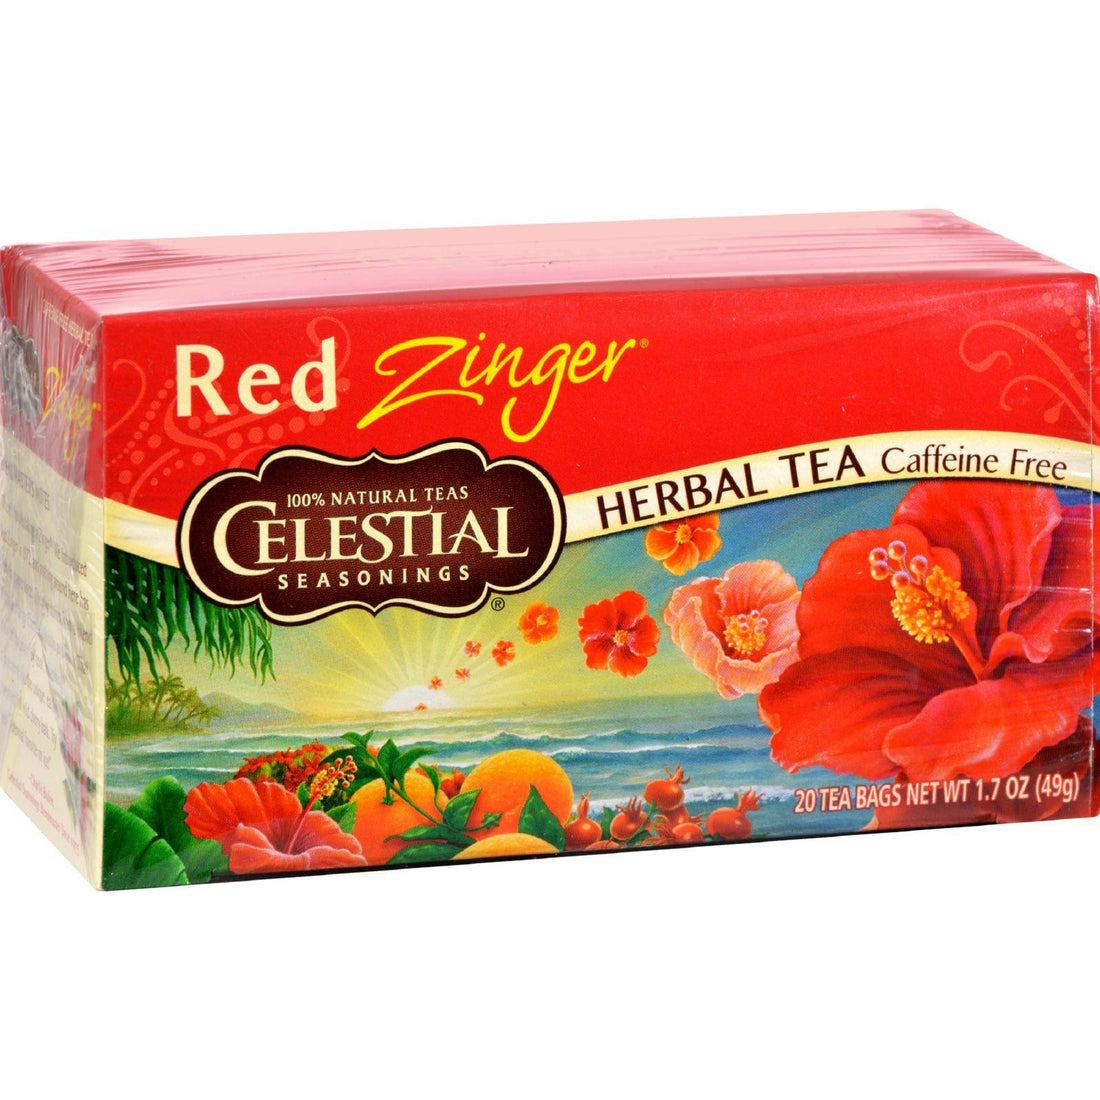 Mother Mantis: Celestial Seasonings Herbal Tea - Caffeine Free - Red Zinger - 20 Bags Celestial Seasonings